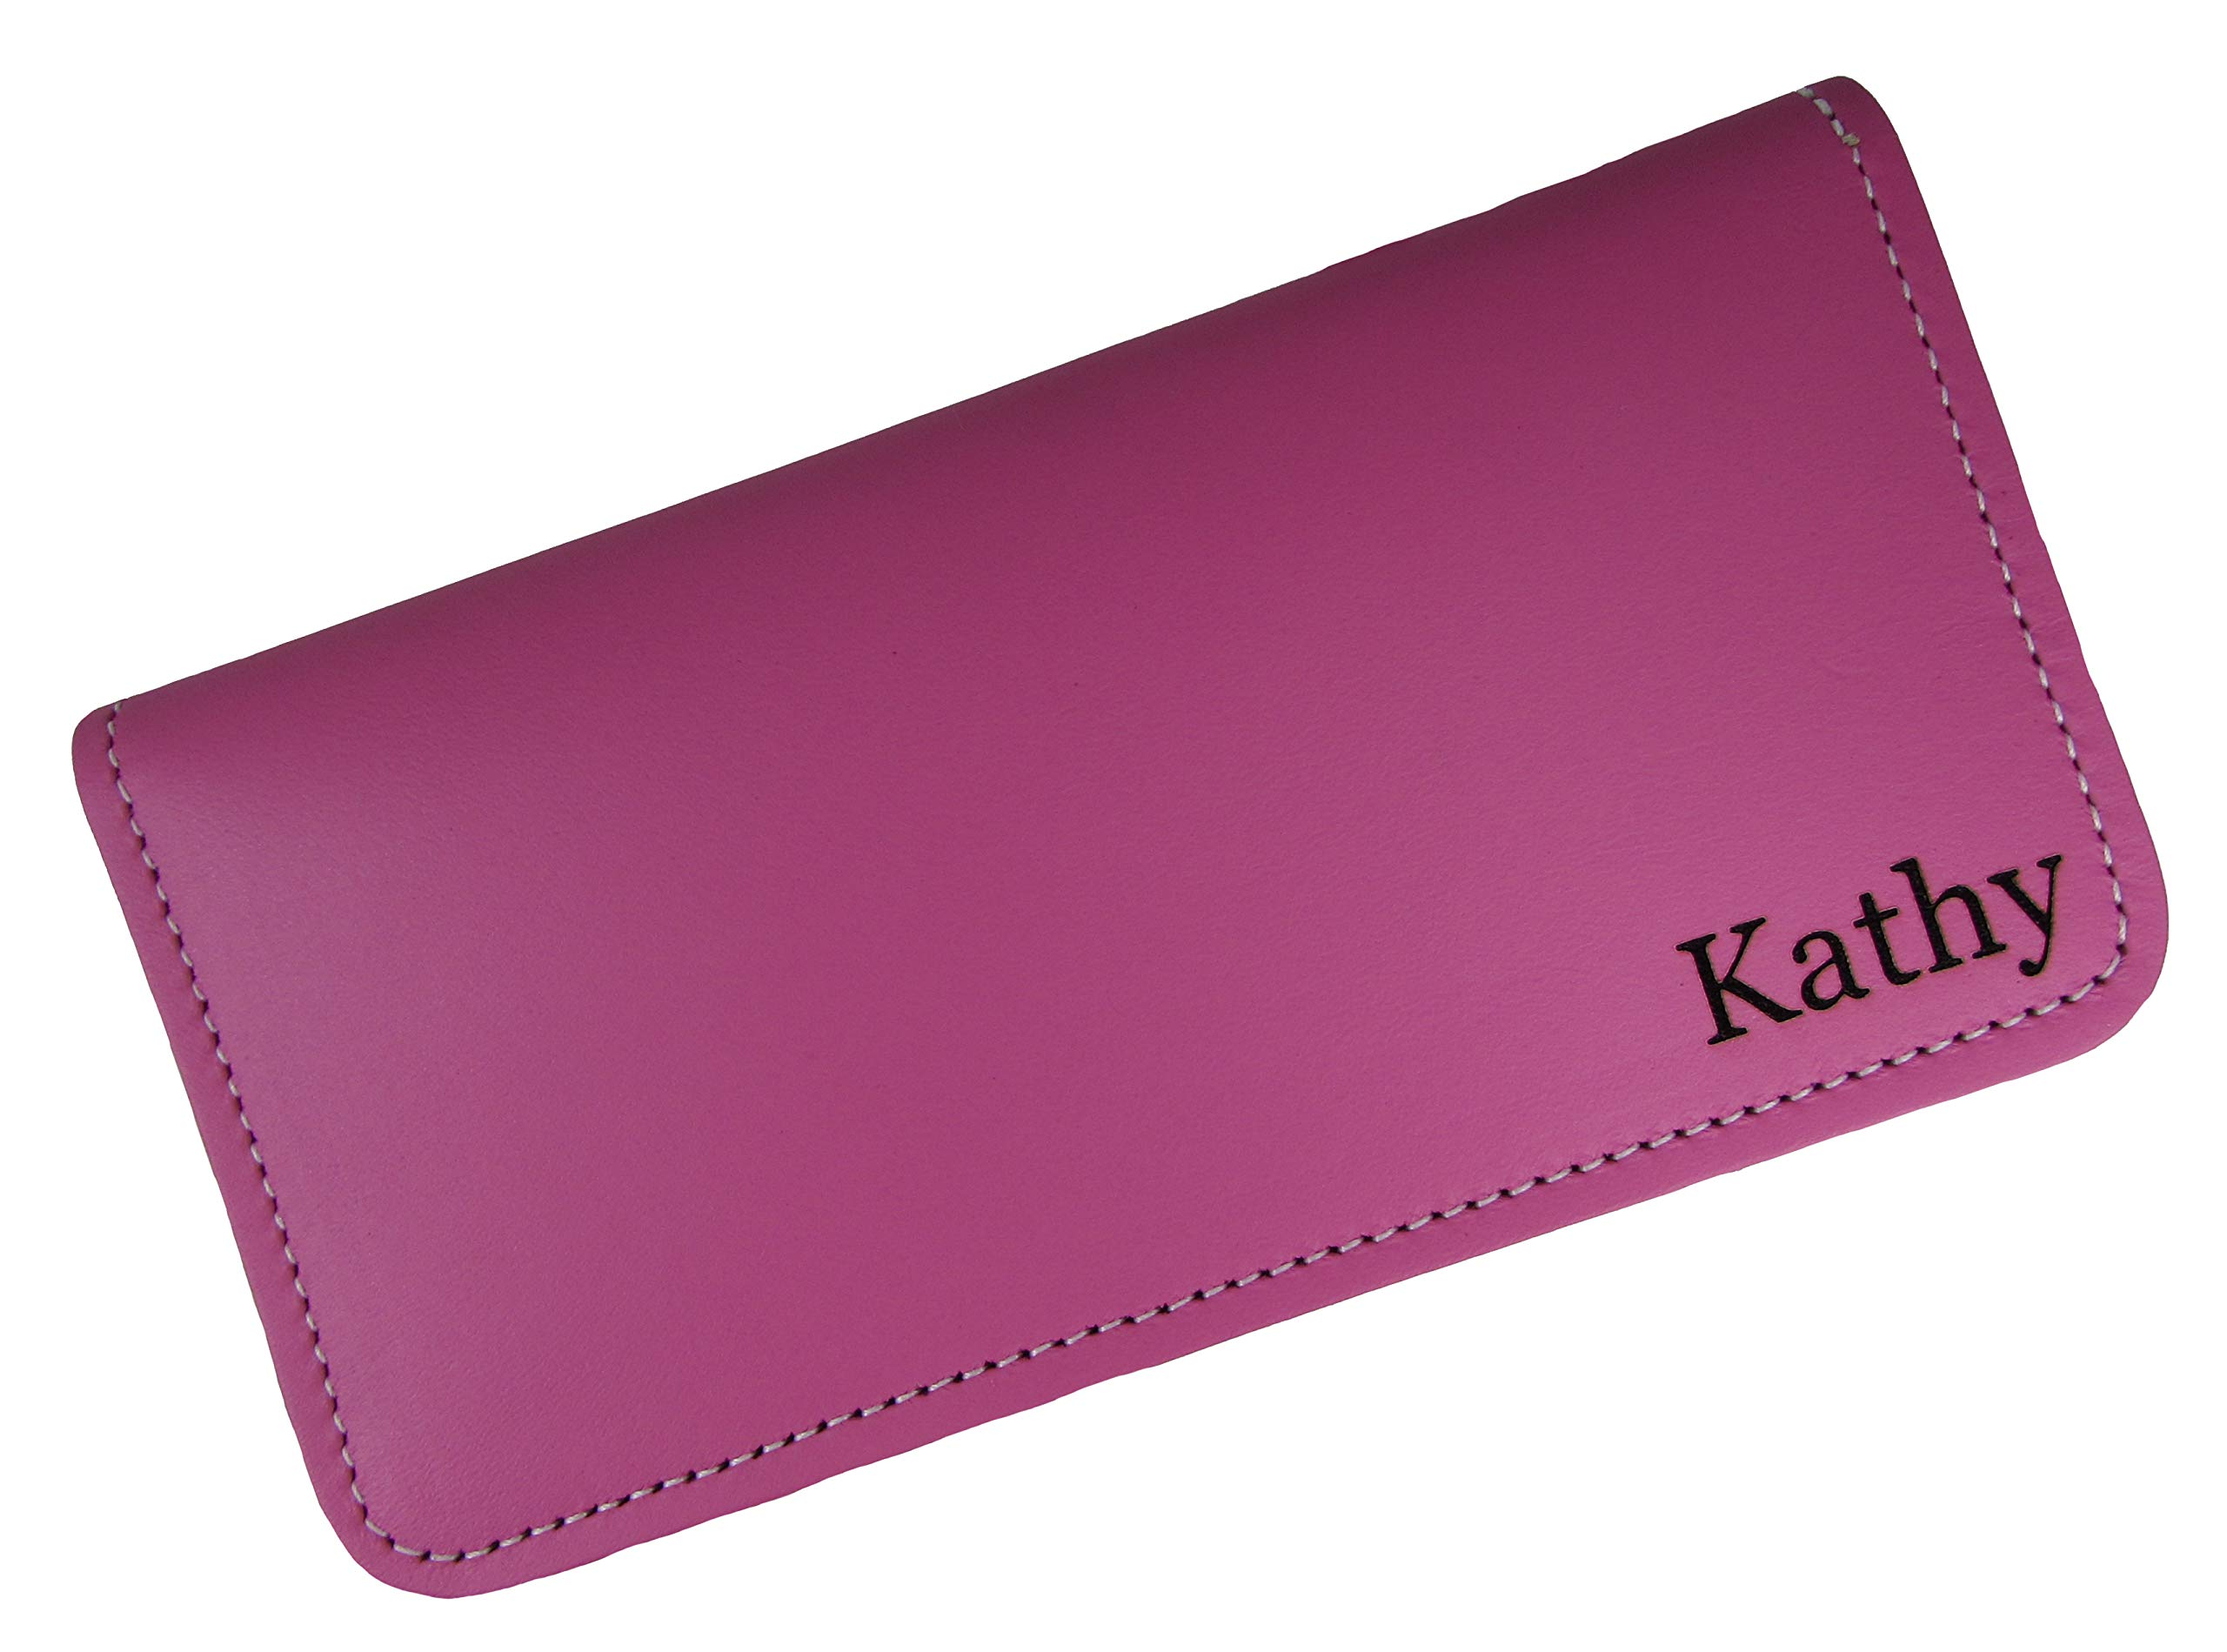 Personalized First Name or Monogram Leather Checkbook Cover, Pink by North Star